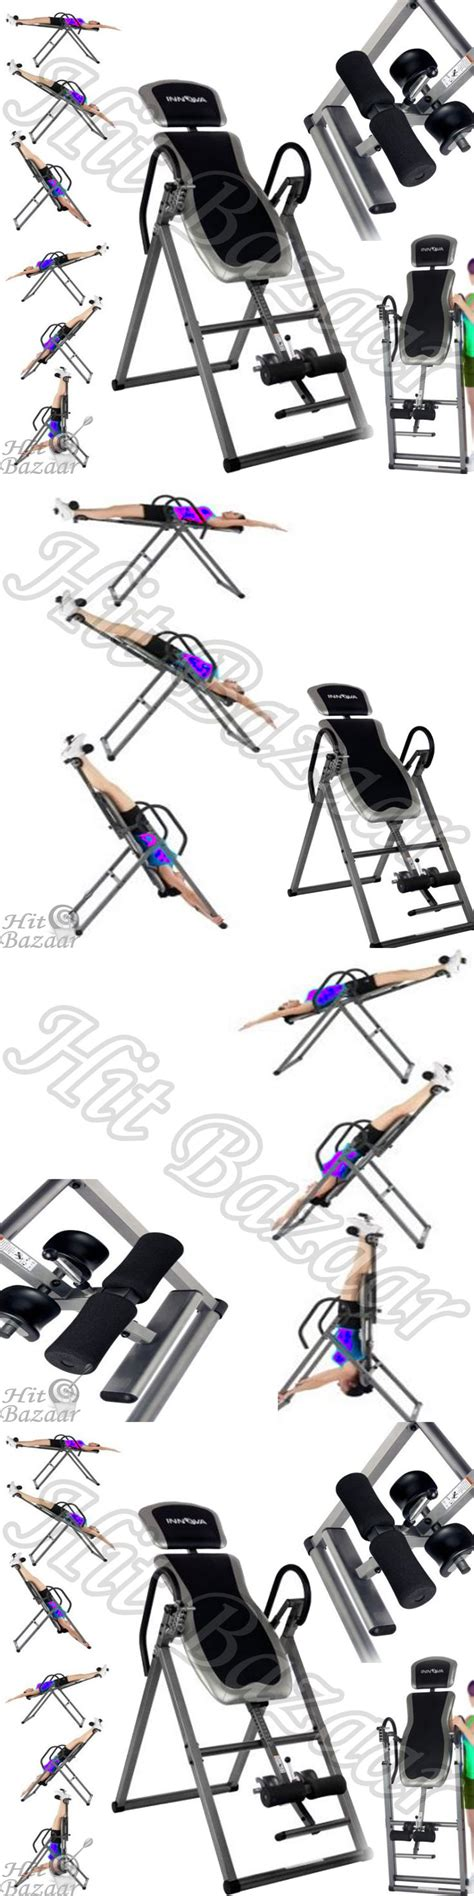 inversion table sciatica exercises 1000 ideas about inversion table on sciatica